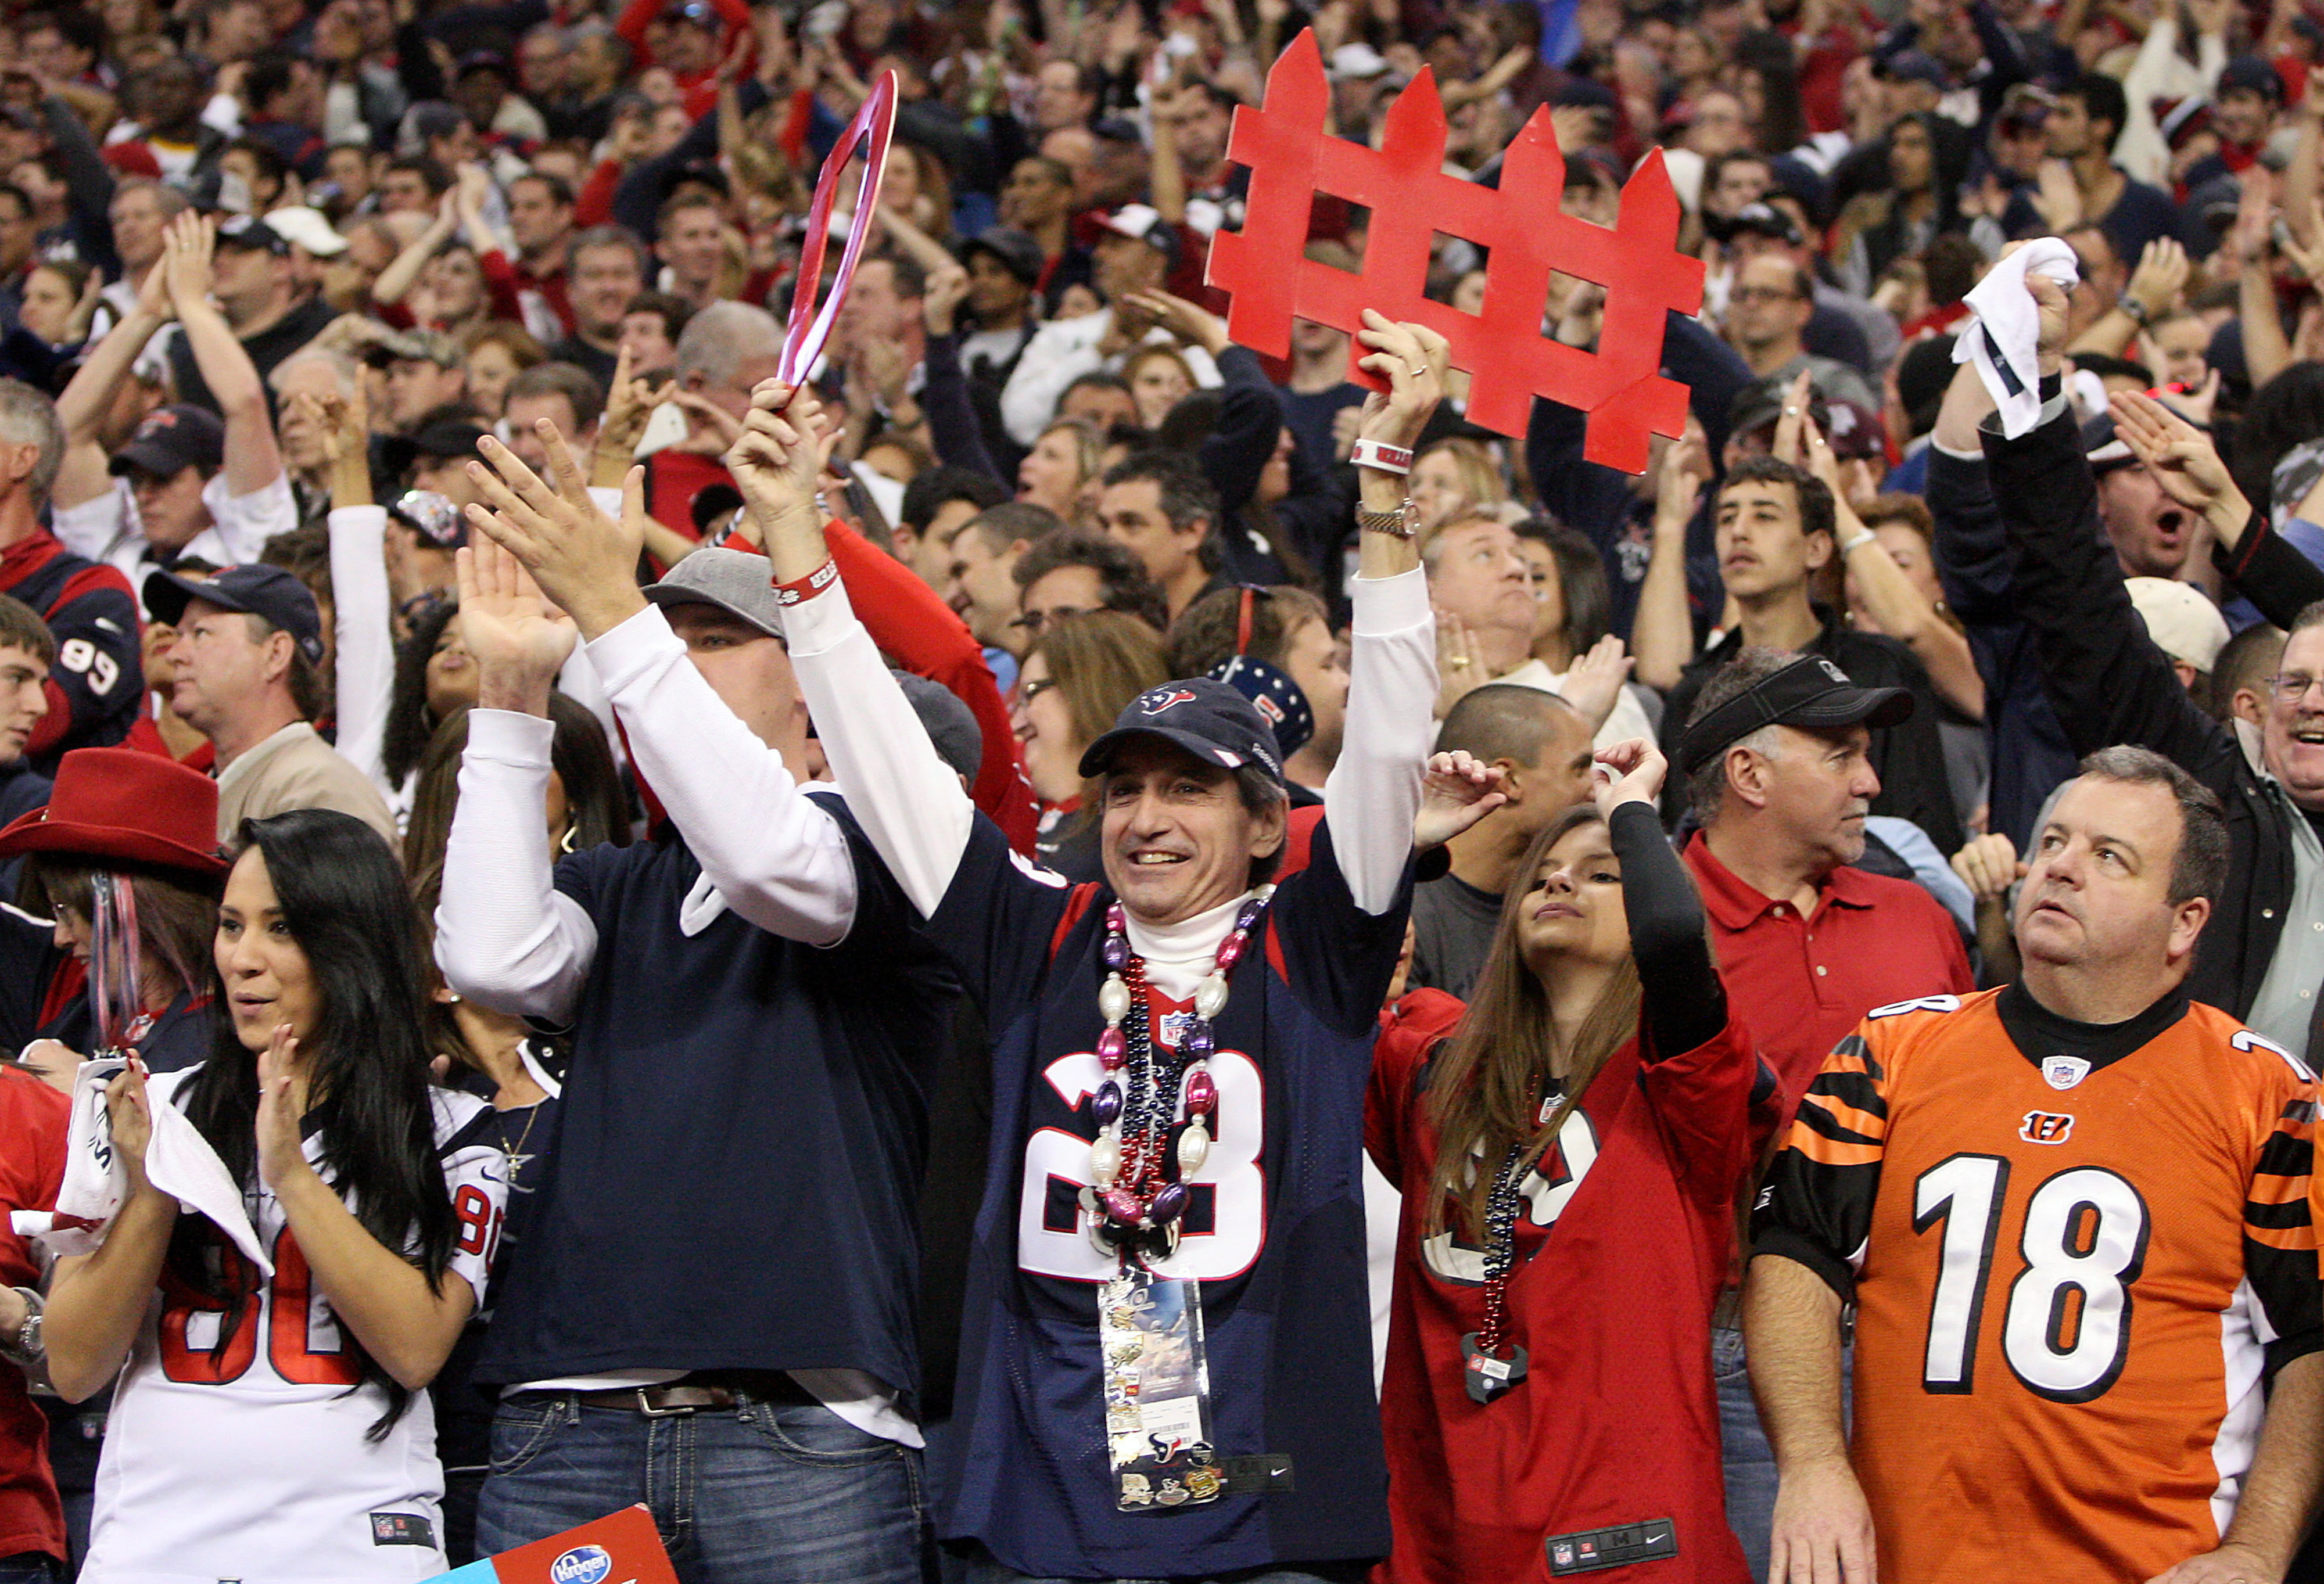 The Texans will face a considerably more hostile environment on Sunday.